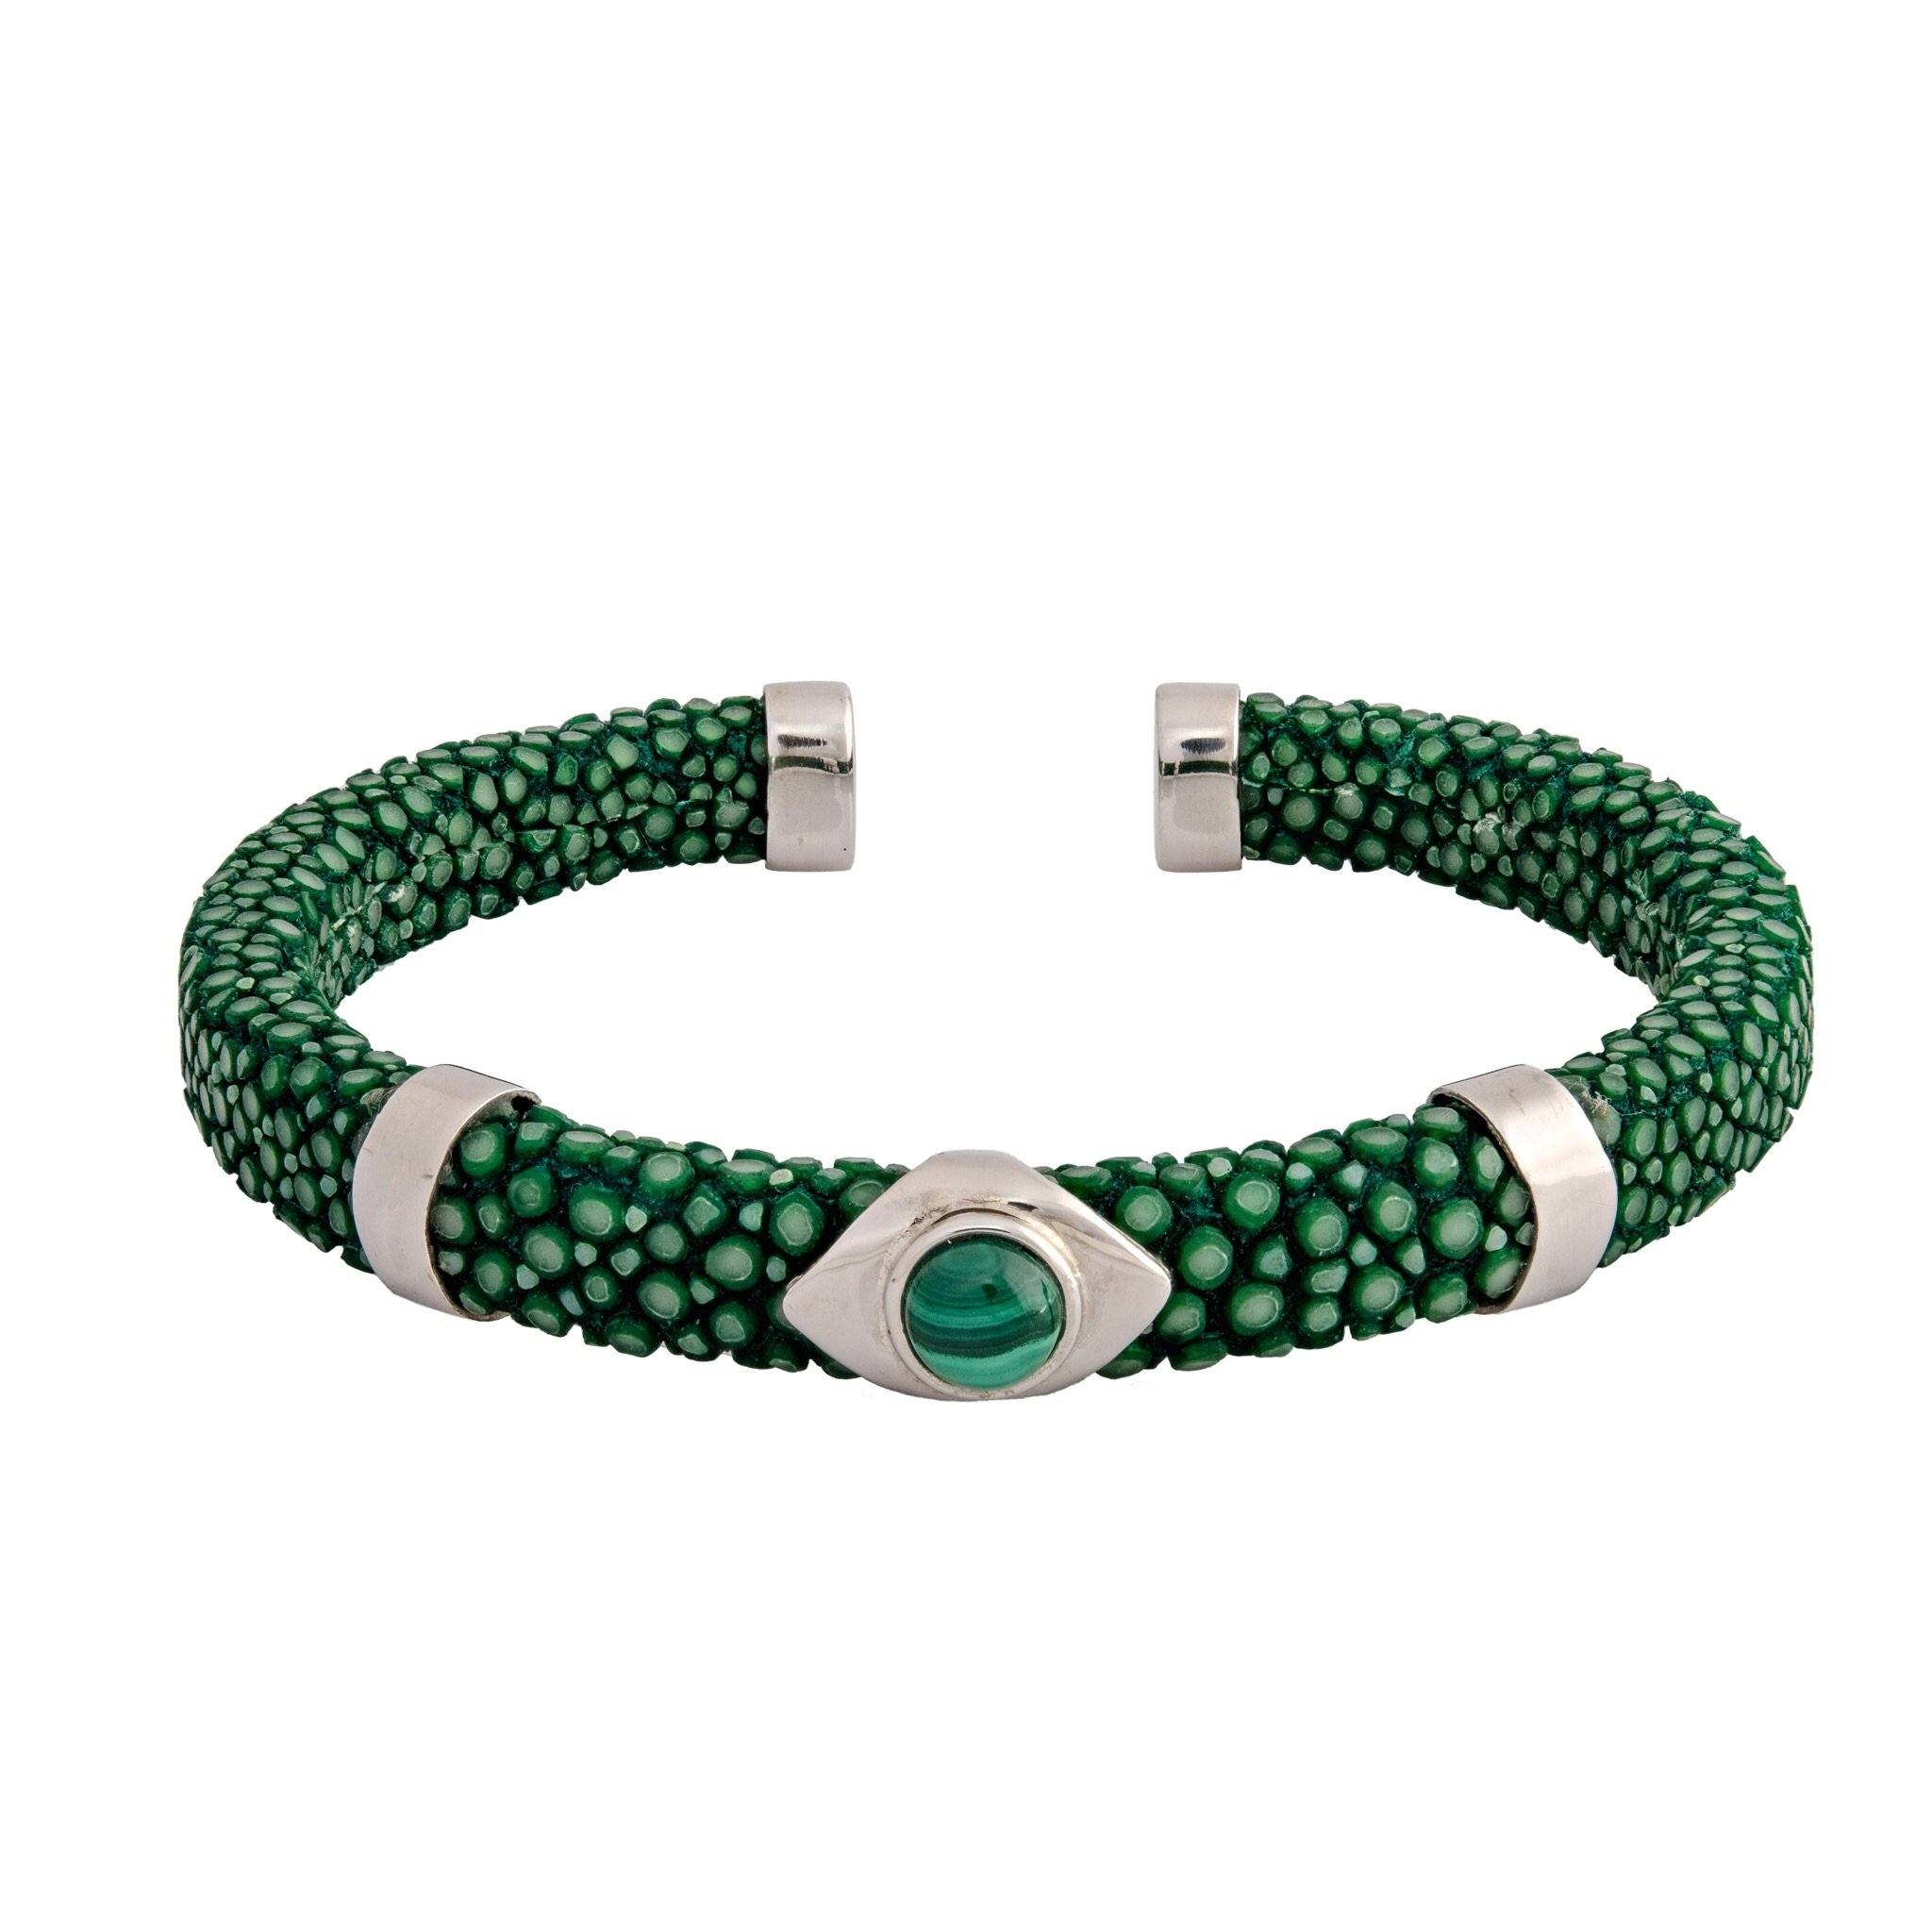 JAVA malachite and stingray bangle - MadamSiam